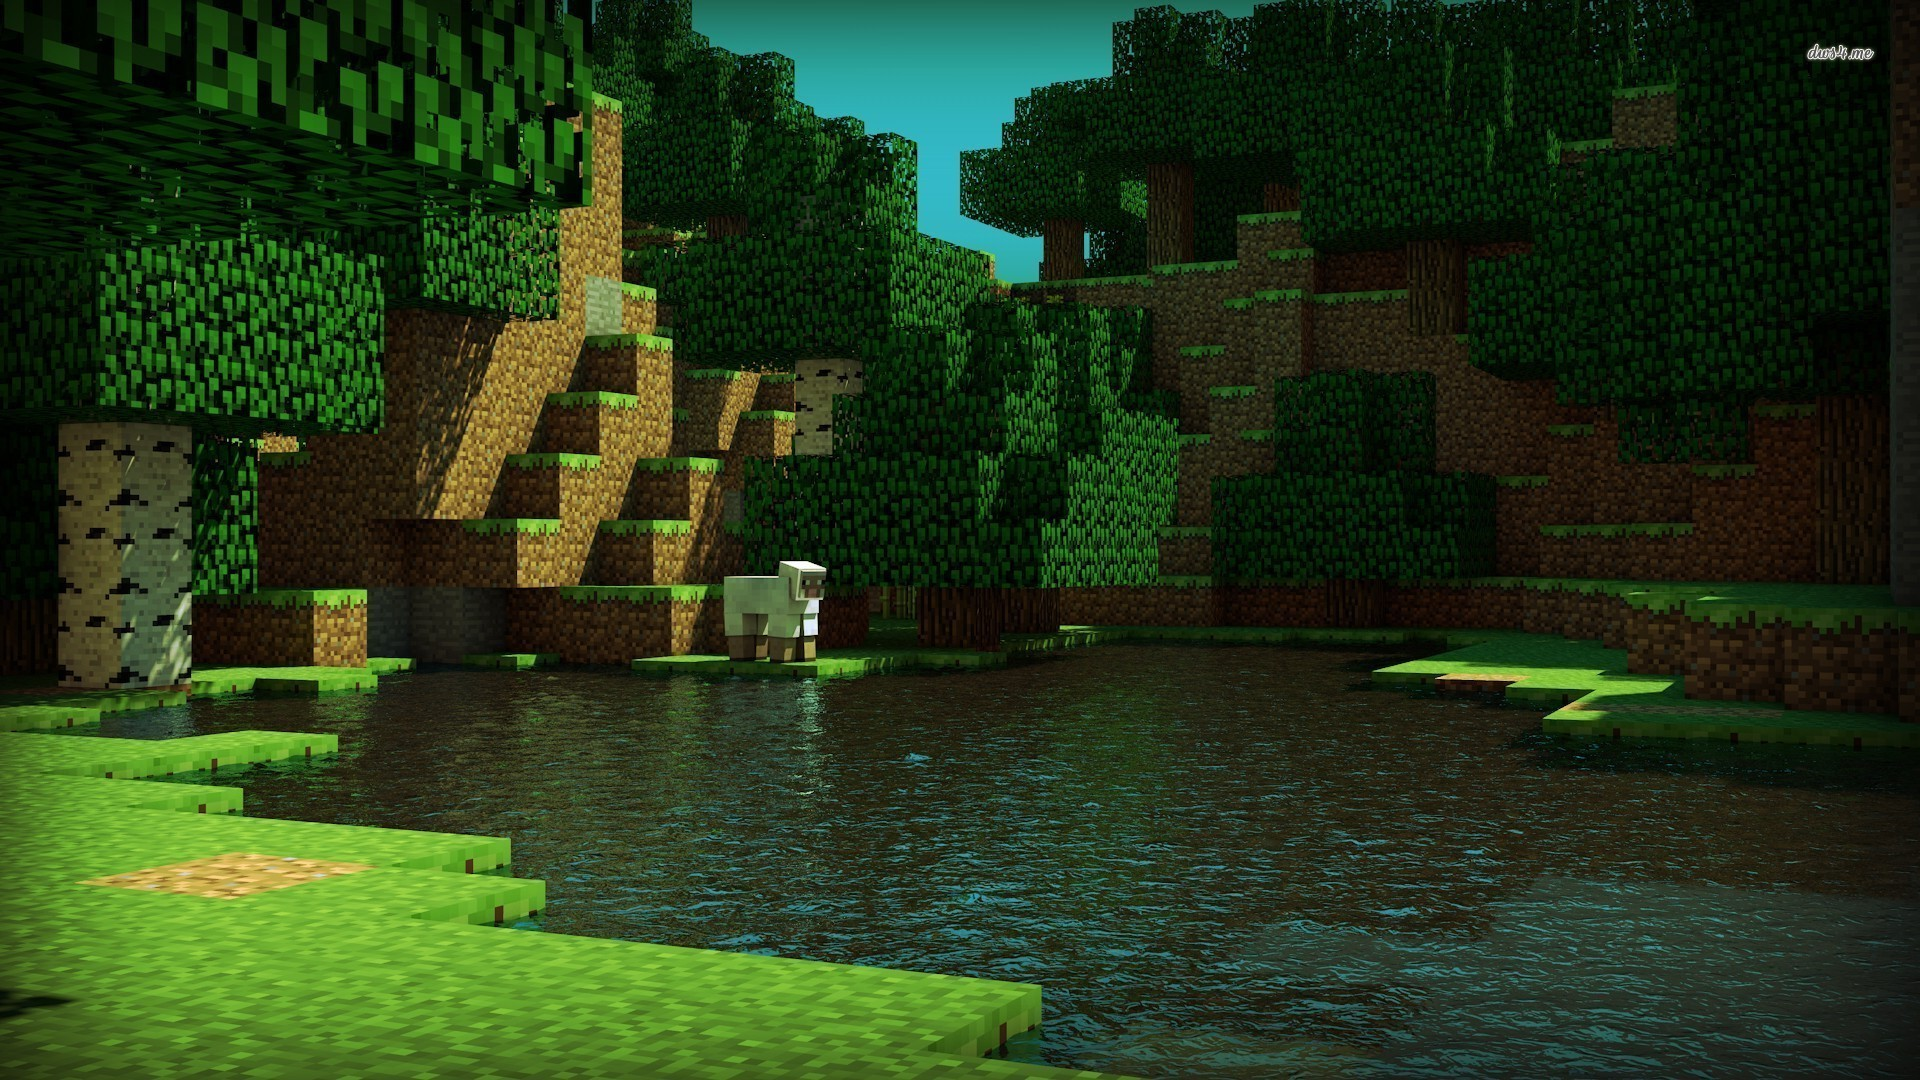 Good Minecraft Backgrounds (73+ Images